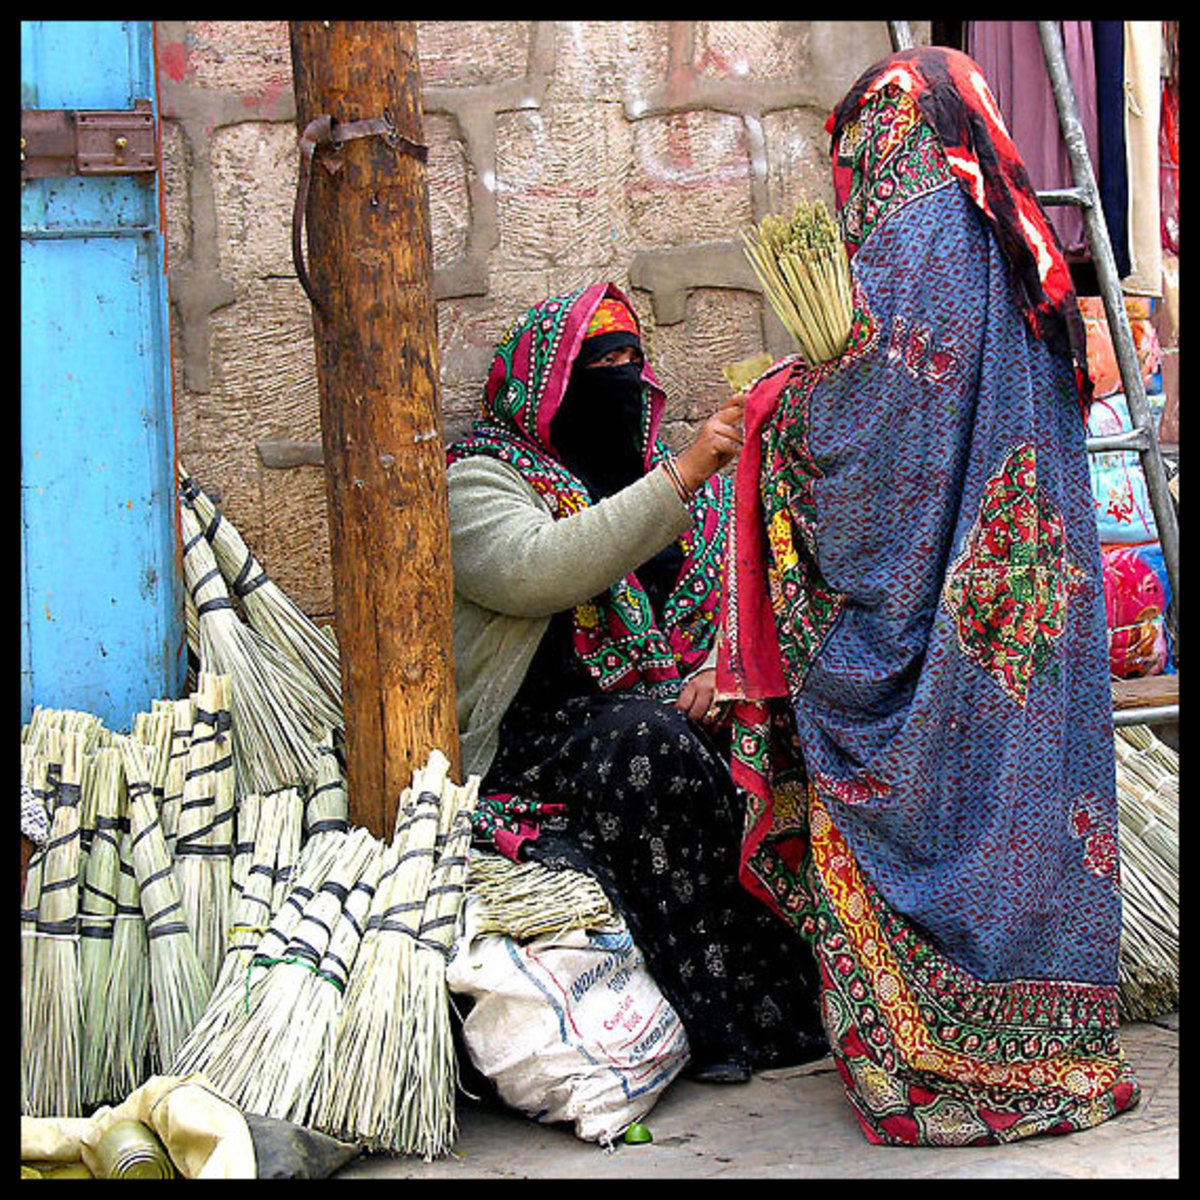 A female Yemeni seller wearing the Sana'ani Sitarah in a local market of Sana'a city